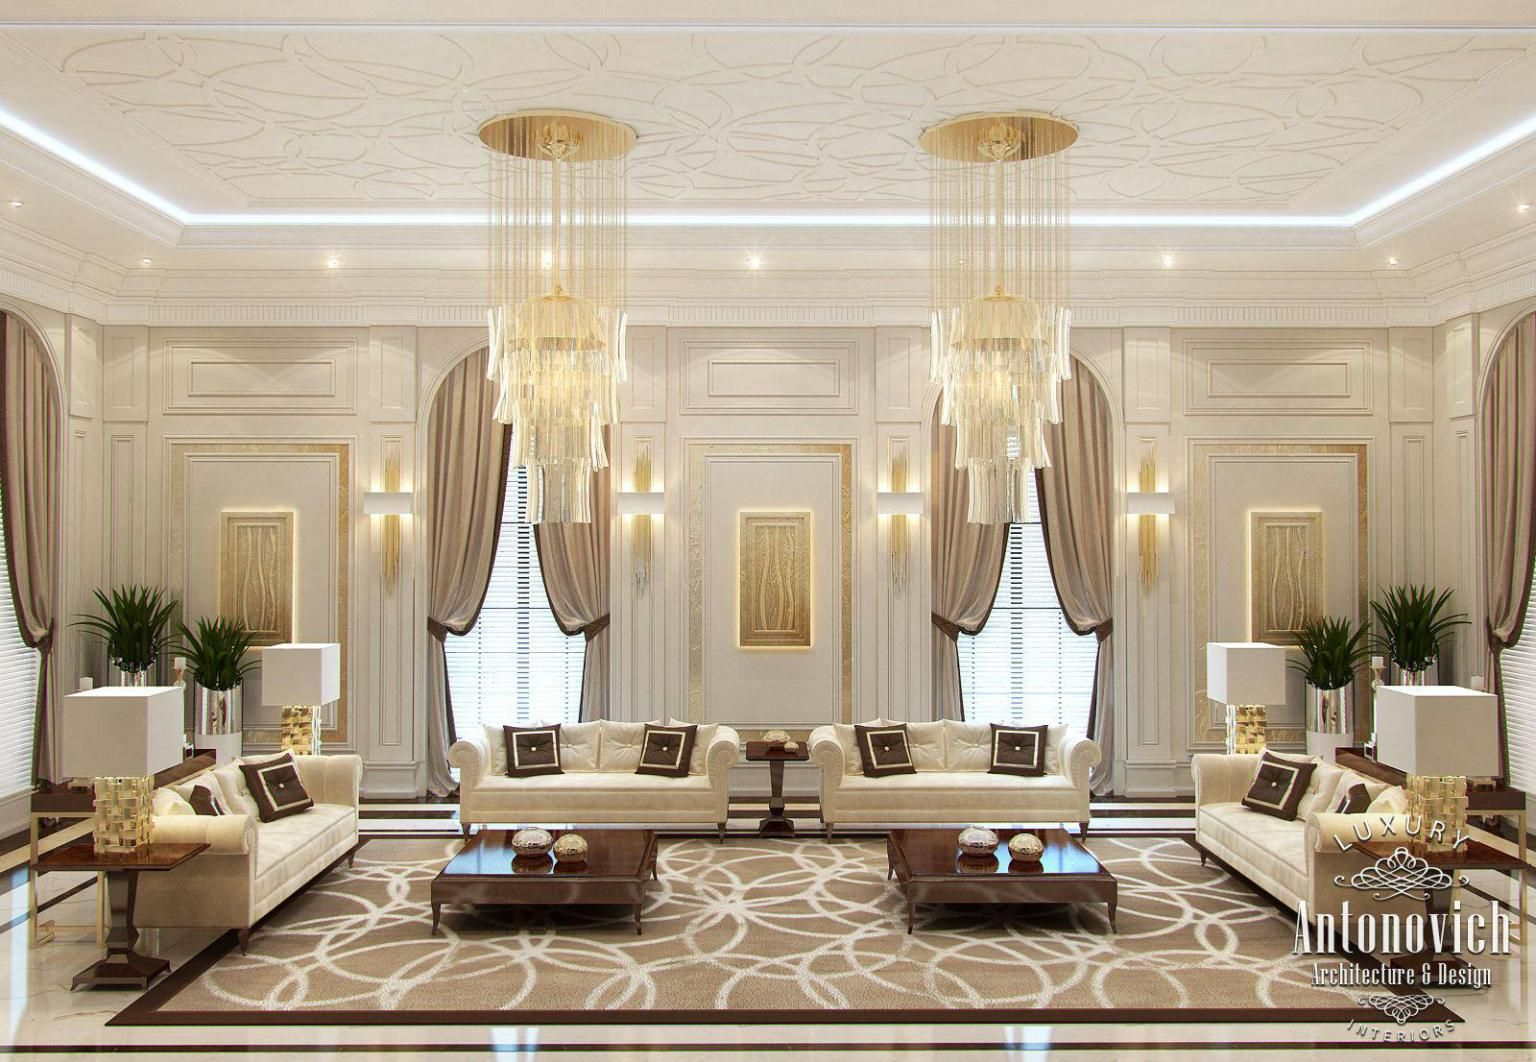 Showcase Of Classic Style Interior Design Stunning Expressions